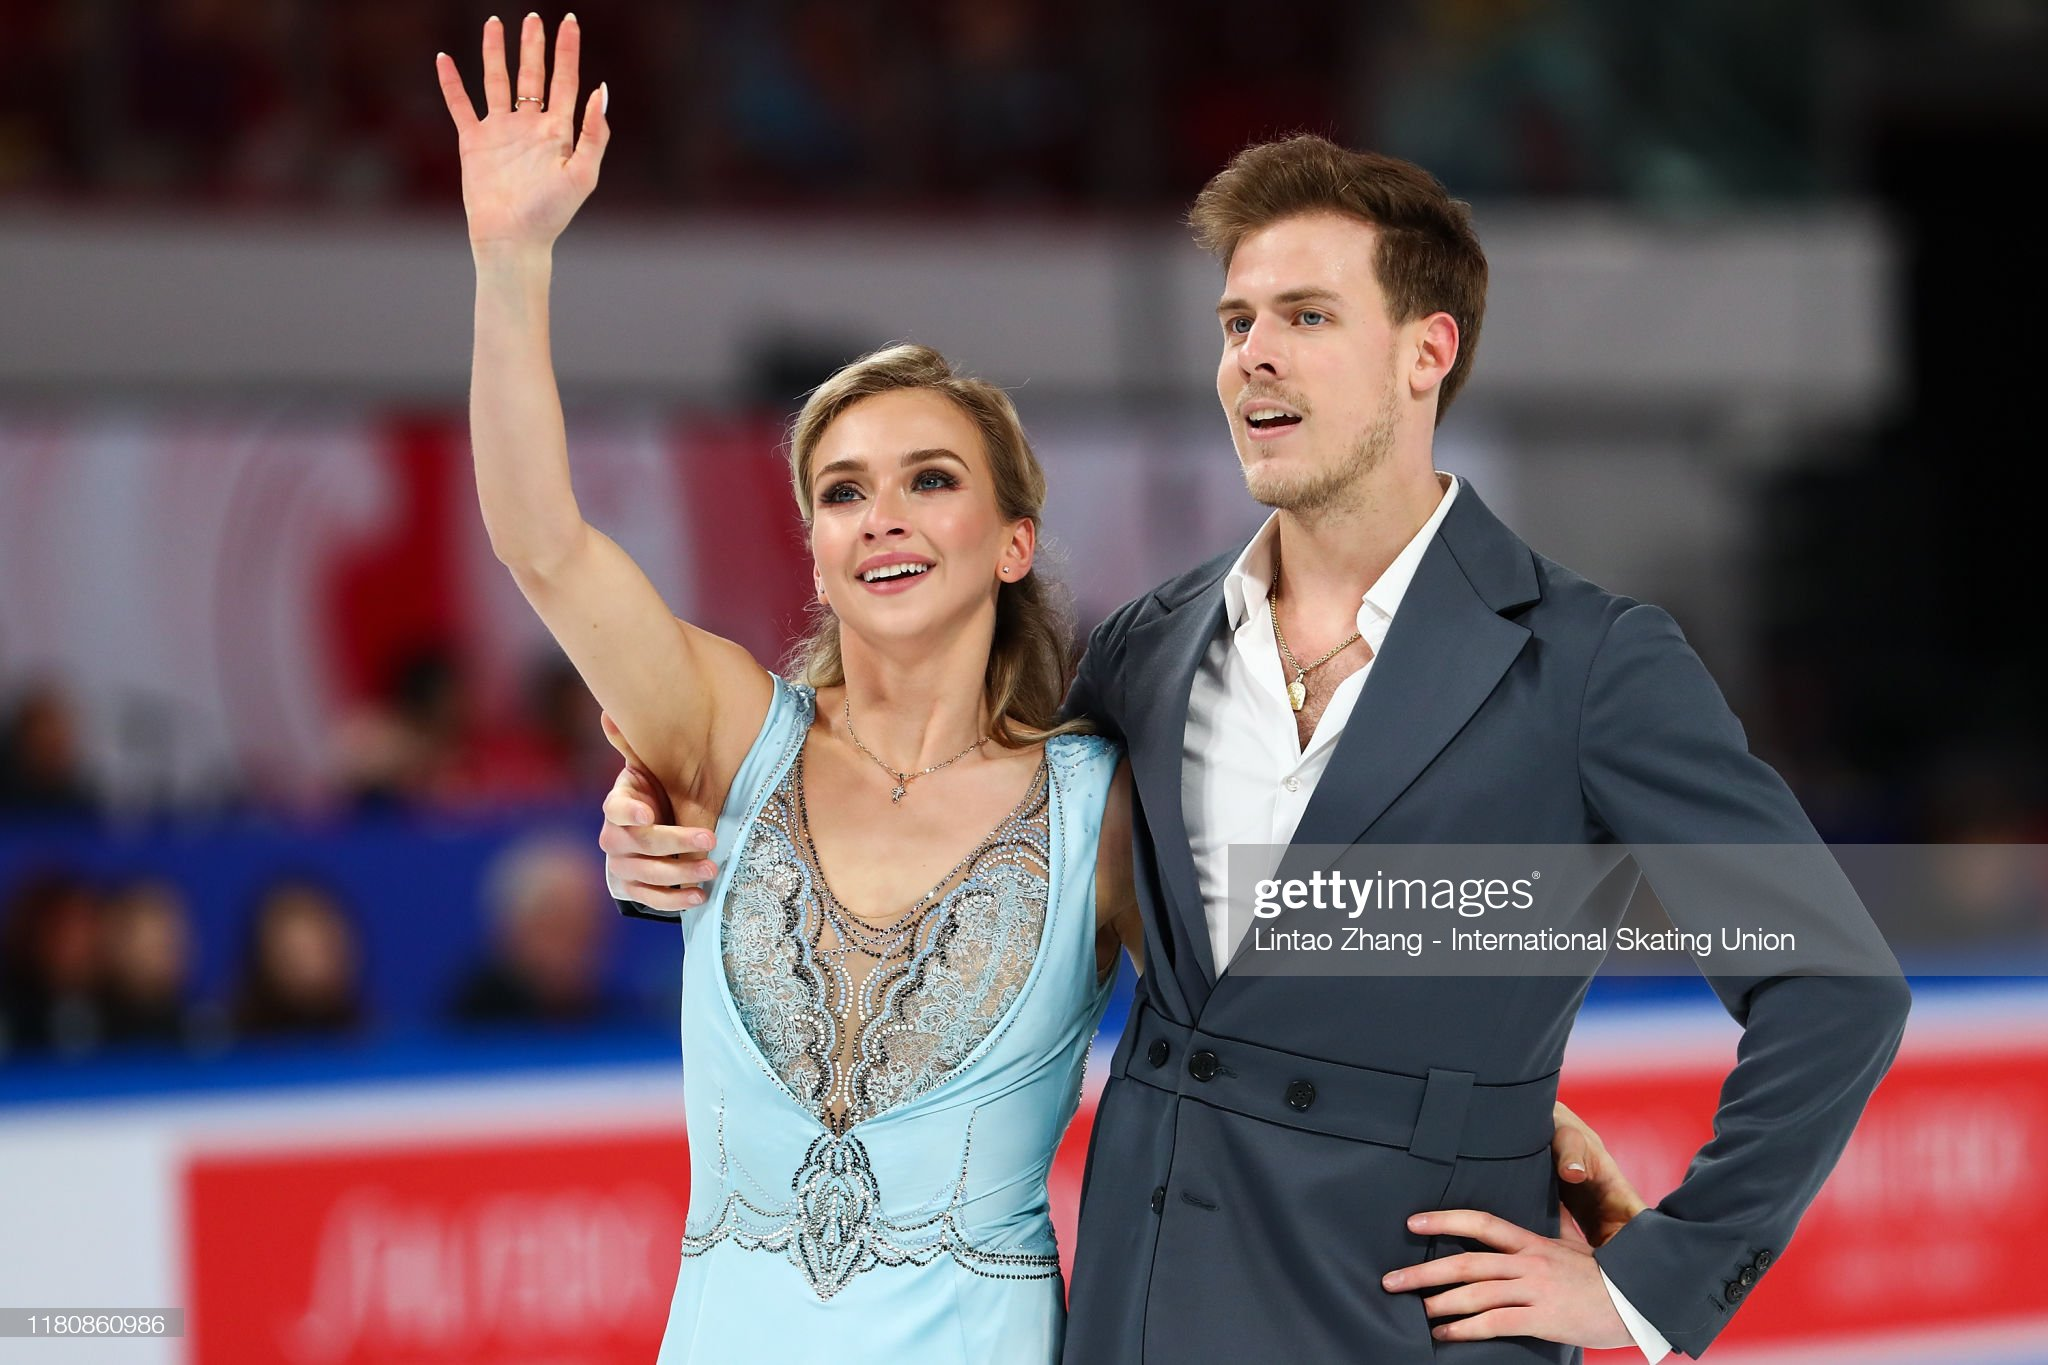 https://media.gettyimages.com/photos/victoria-sinitsina-and-nikita-katsalapov-of-russia-reacts-after-in-picture-id1180860986?s=2048x2048